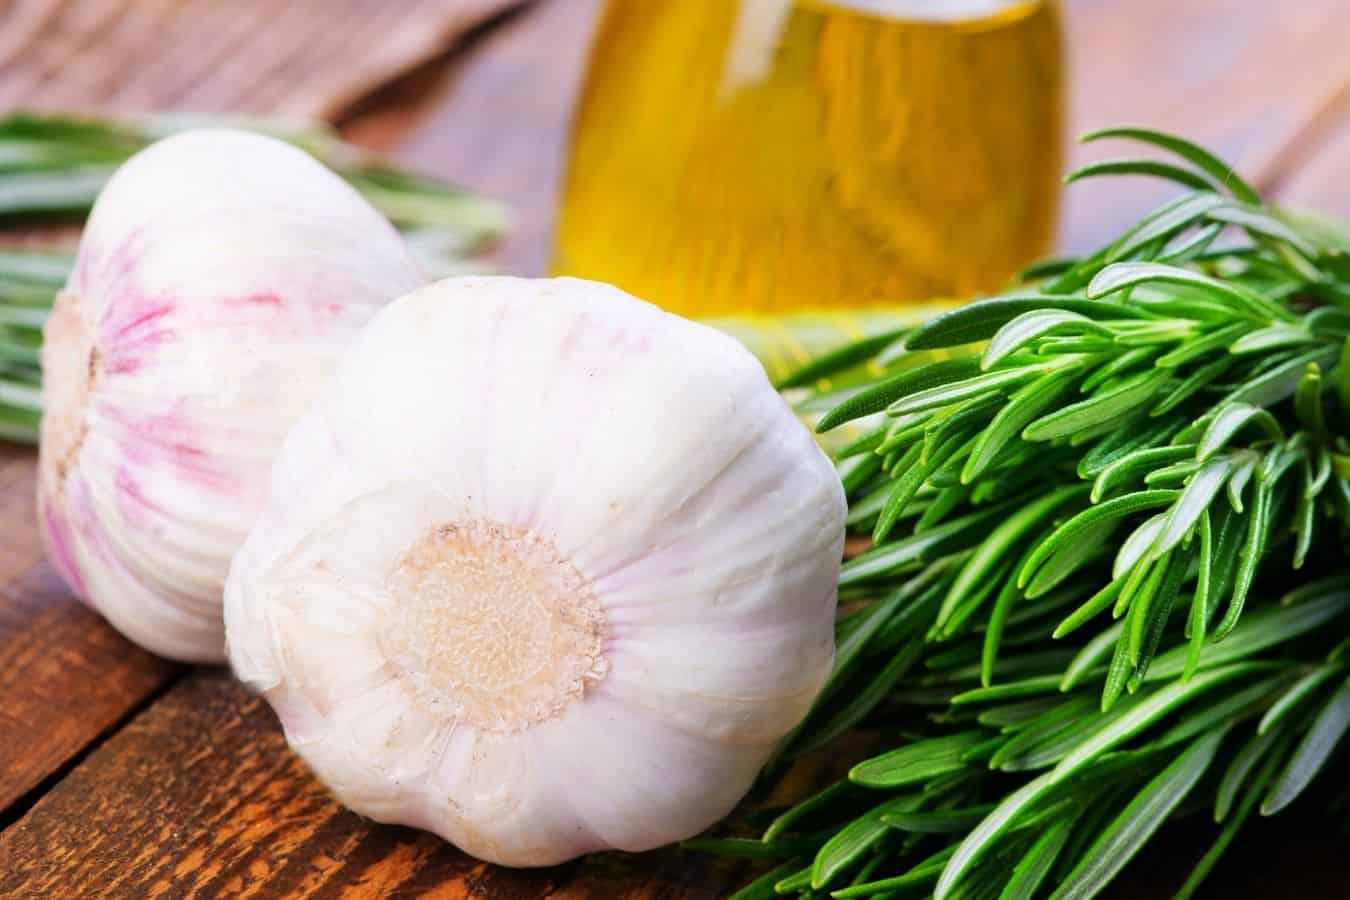 Onion And Garlic Oil For Hair Growth